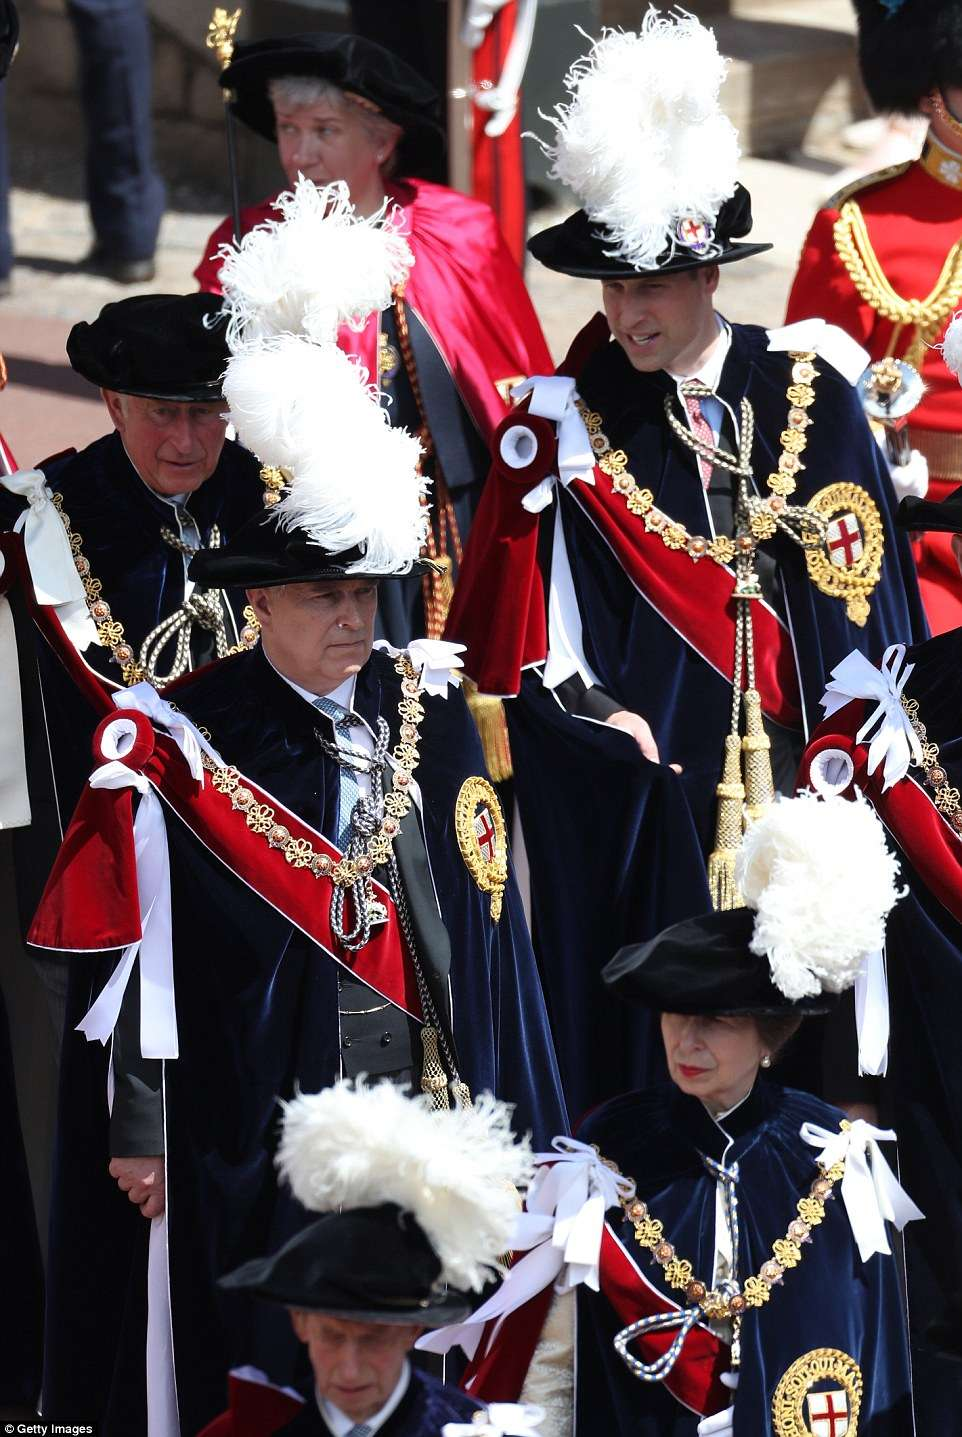 The Order of the Garter is the senior and oldest British Order of Chivalry, founded by Edward III in 1348. The Garter ceremonial dates from 1948